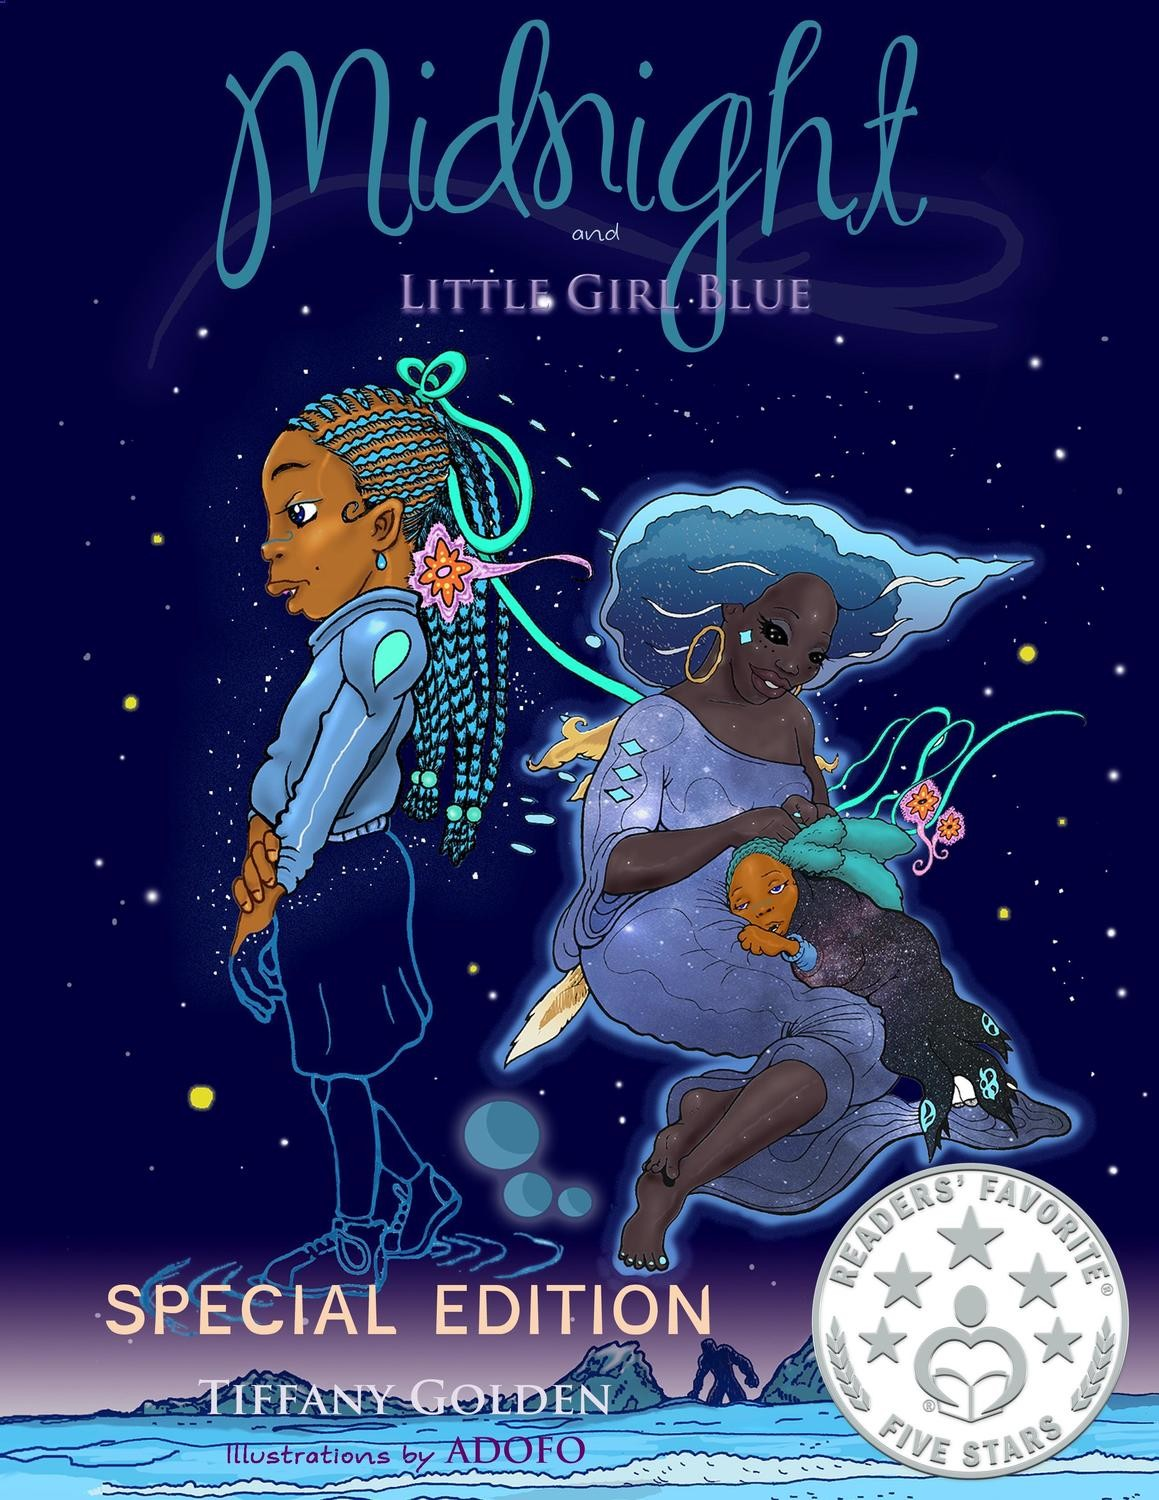 Book 2 - SPECIAL EDITION Midnight and Little Girl Blue